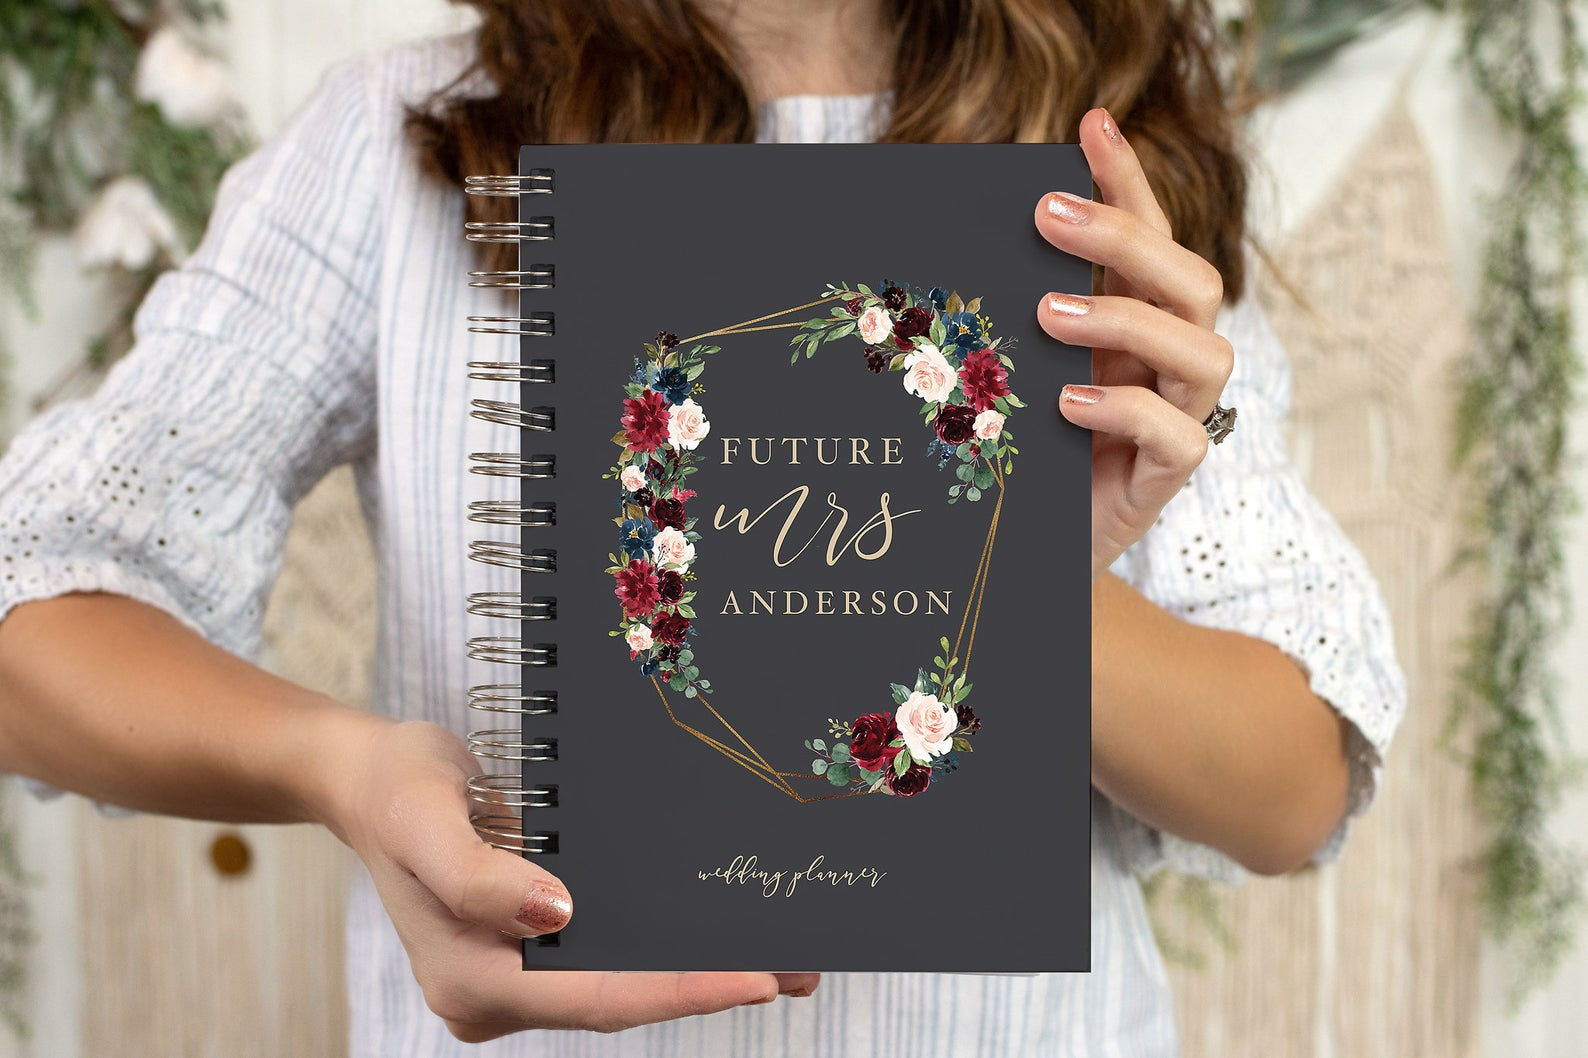 Boho Wedding Planner - Personalized Bride and Groom Wedding Planner